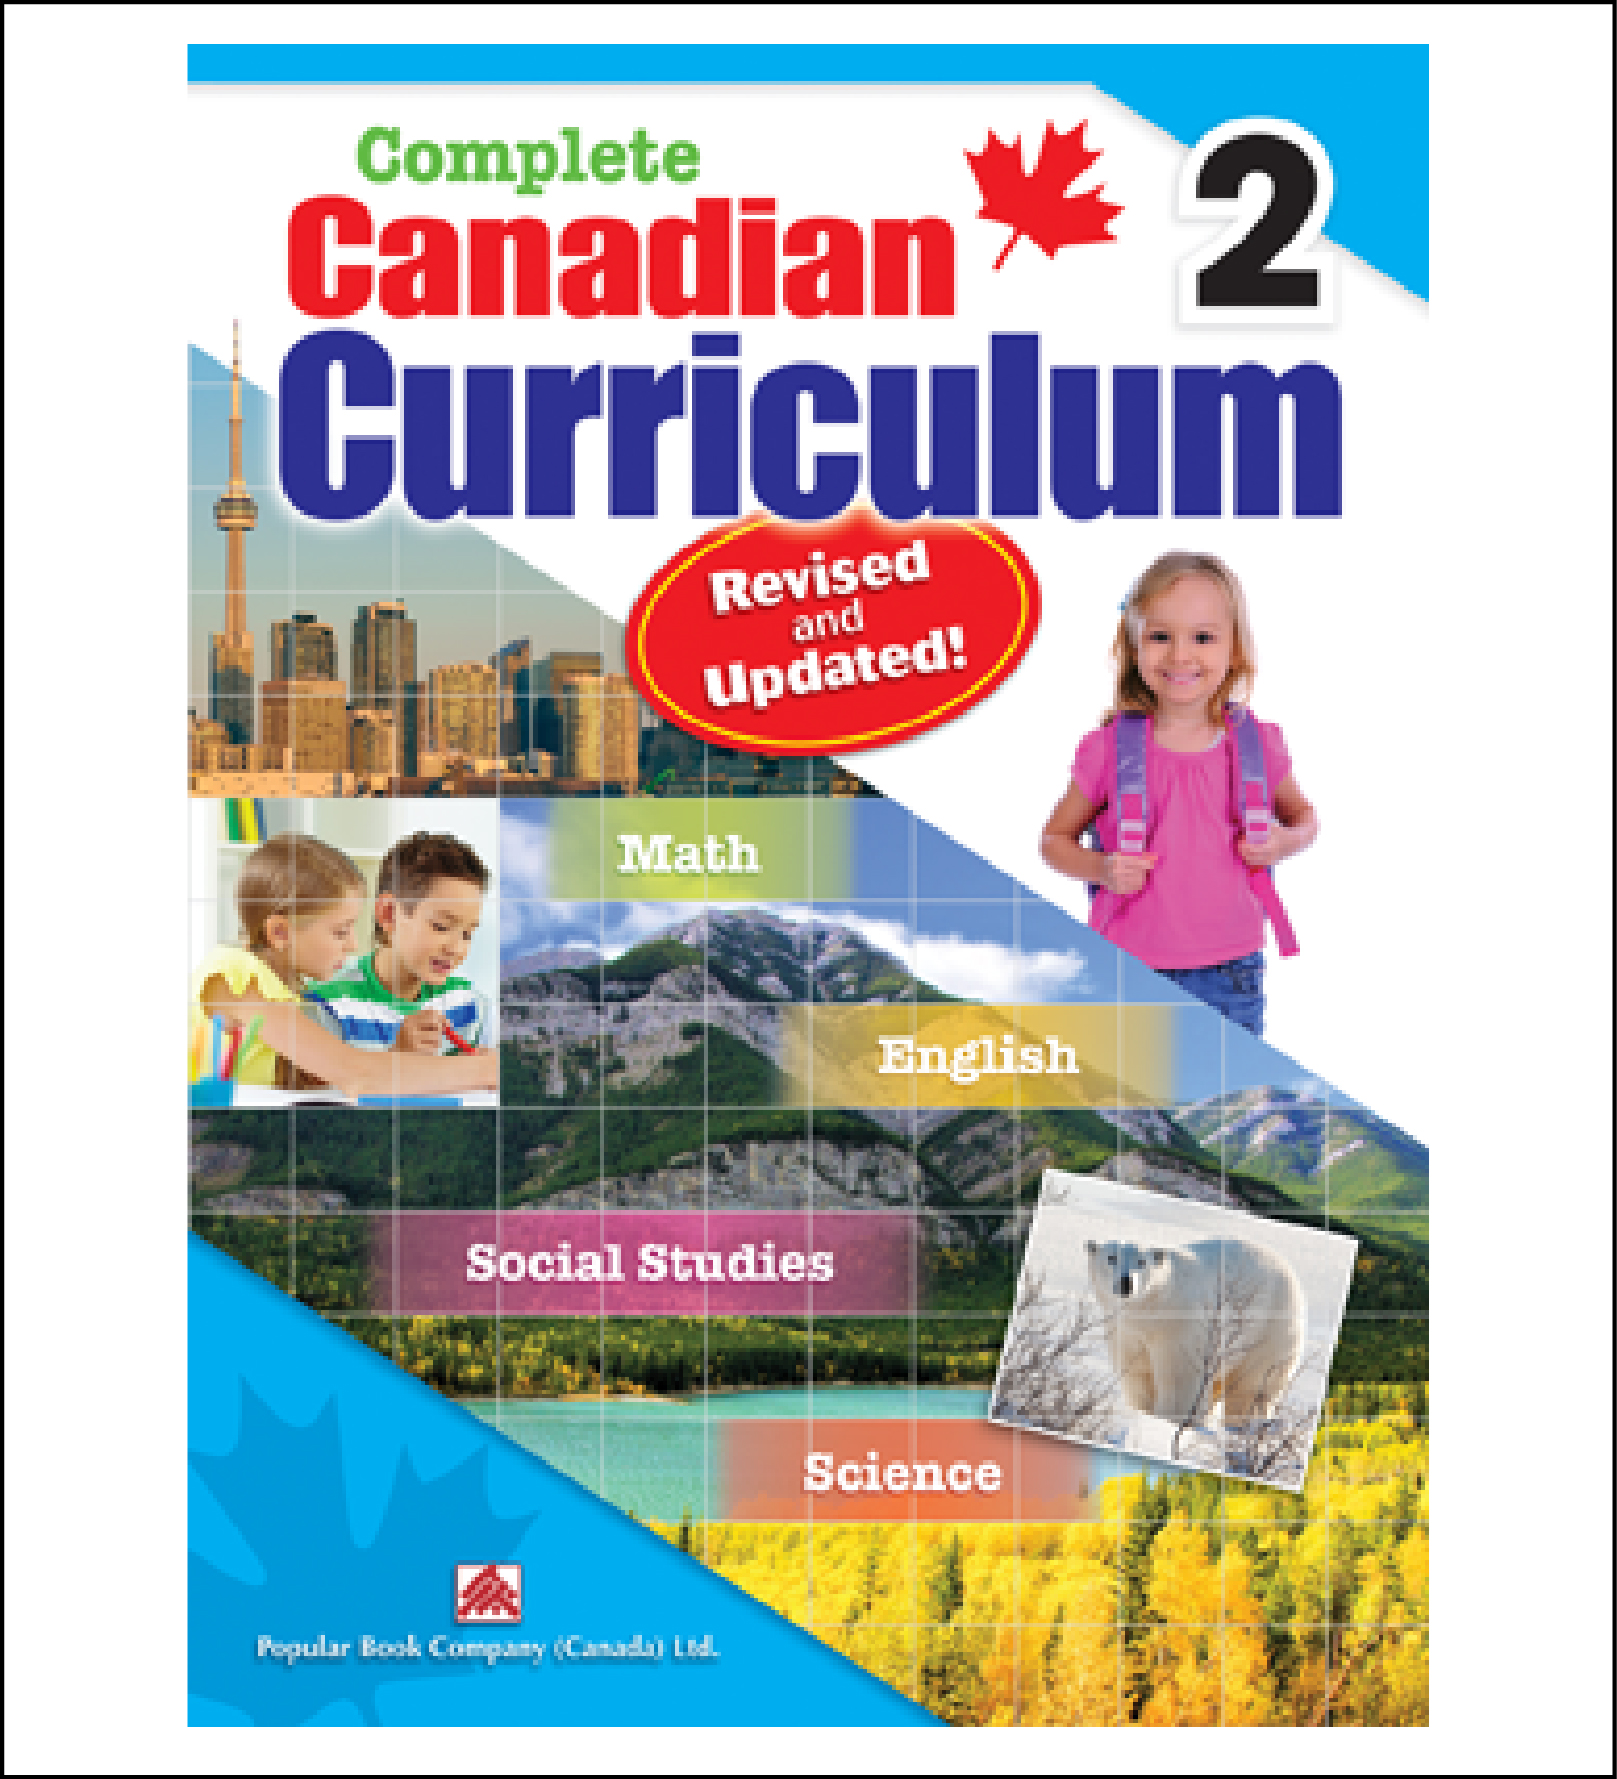 Complete Canadian Curriculum (Revised and Updated) Grade 2 | Popular